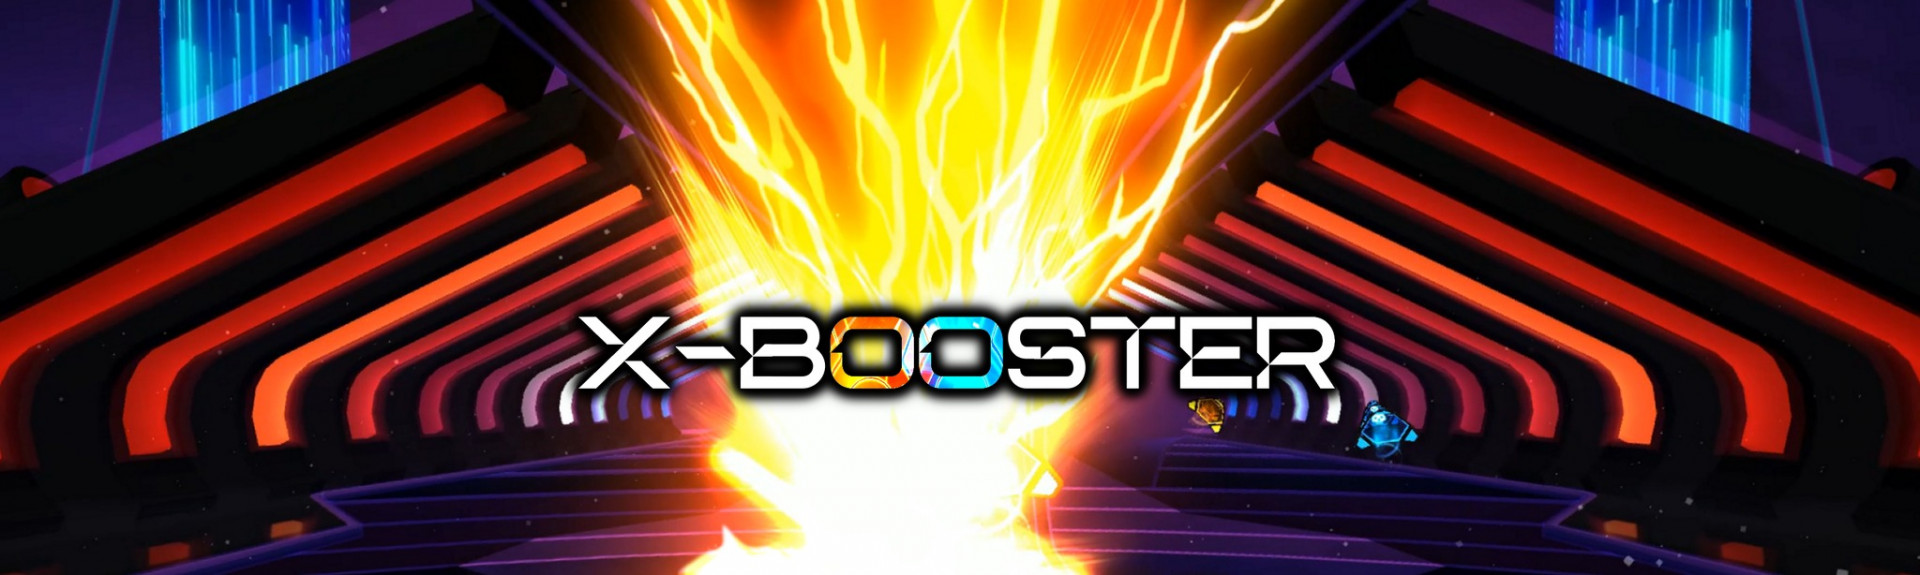 X-BOOSTER DEMO